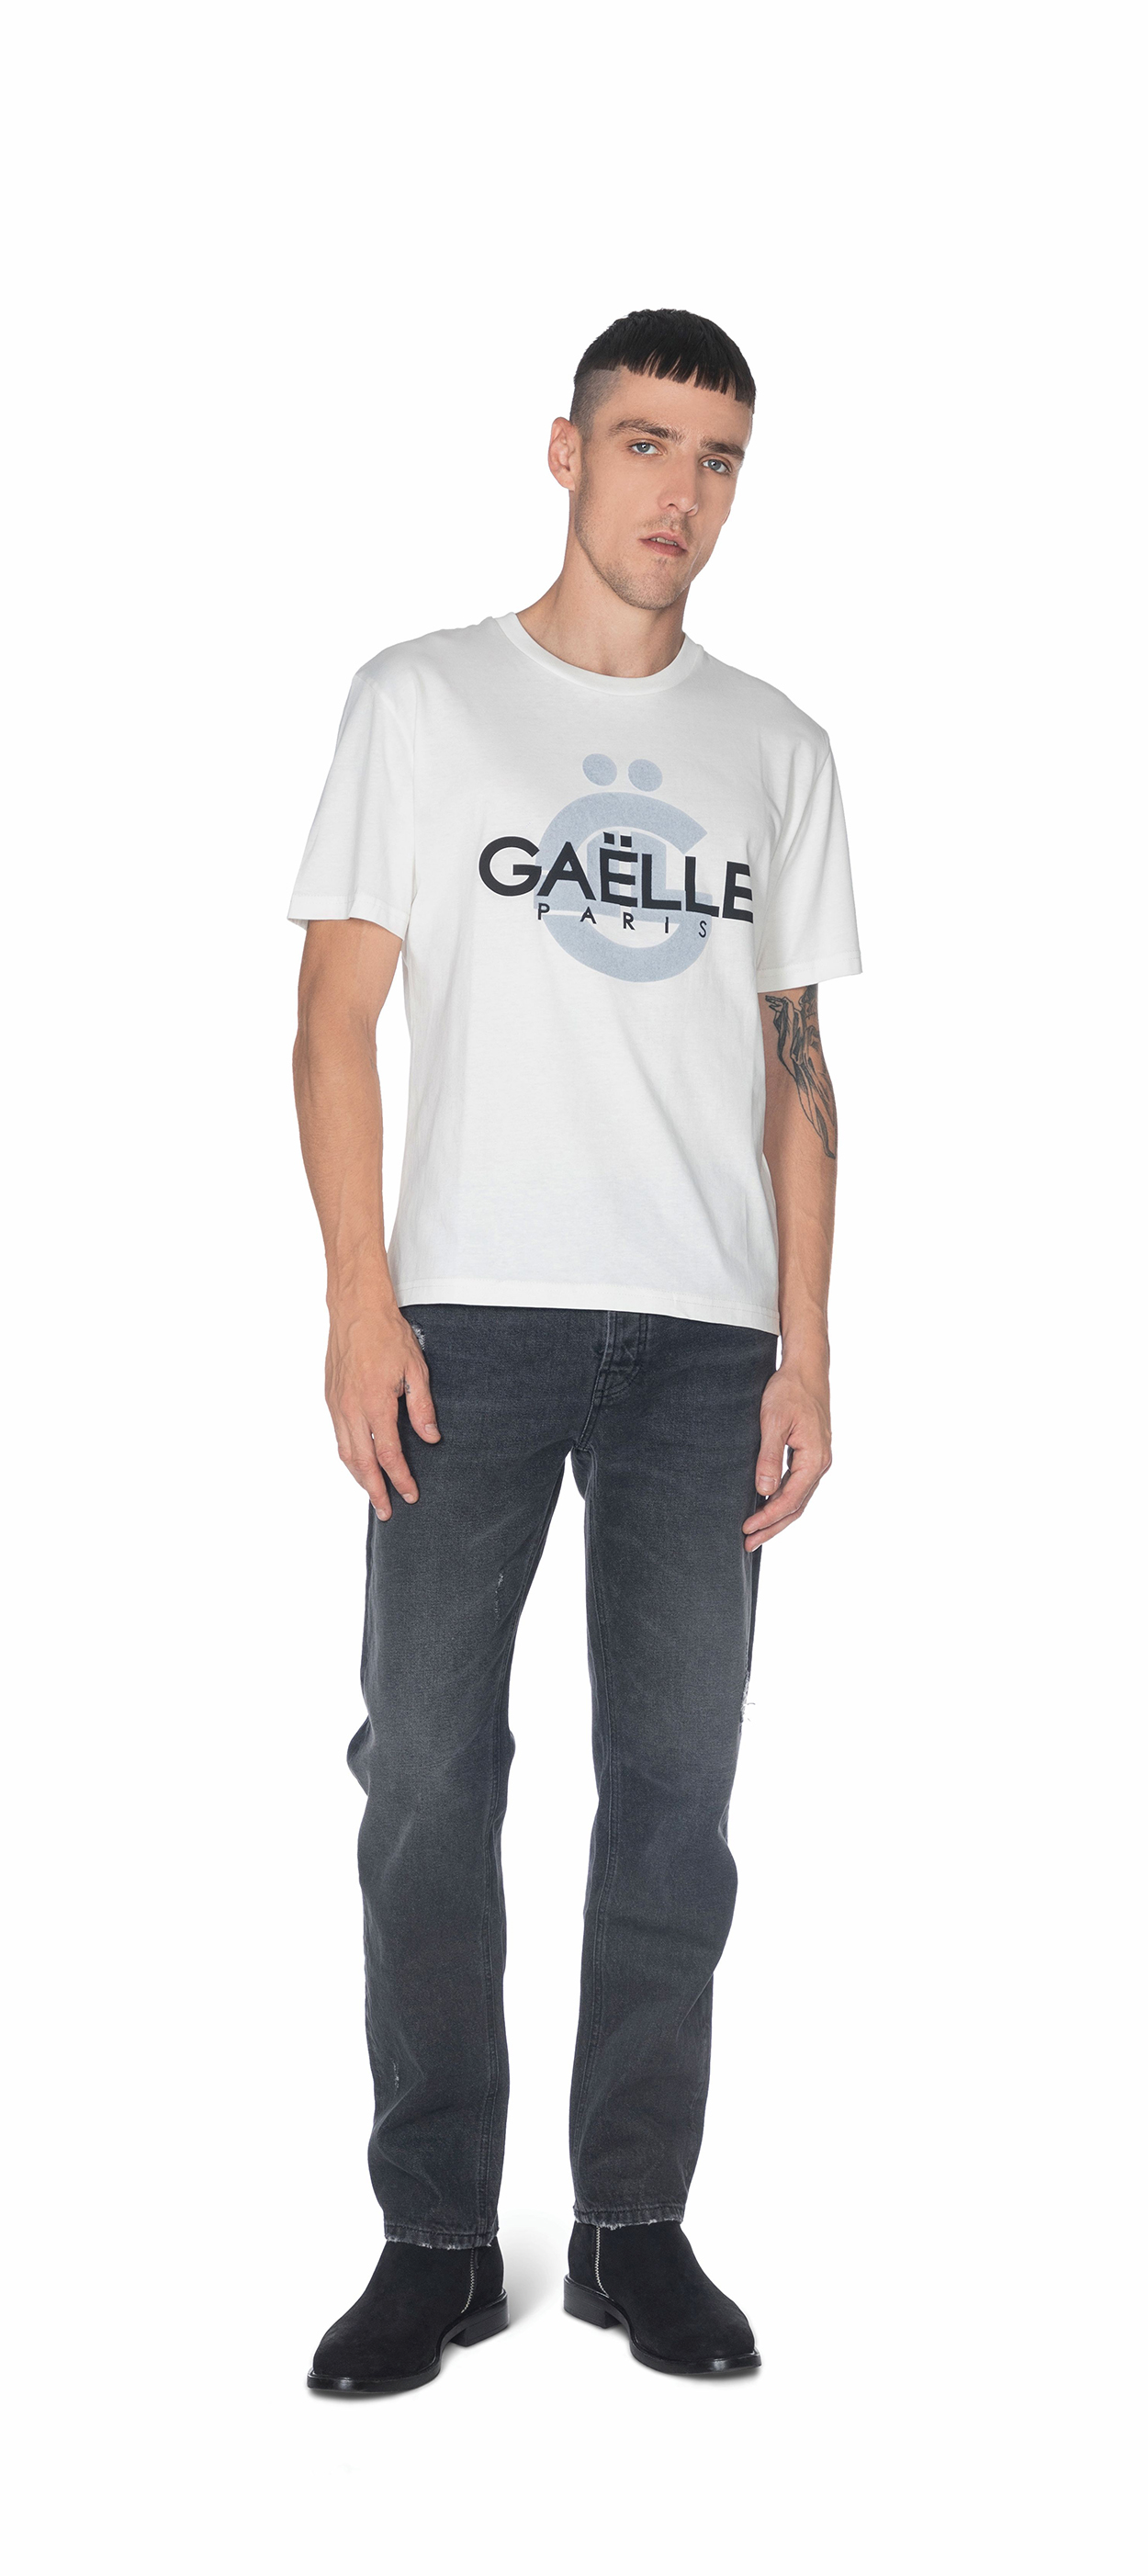 T-SHIRT - GBU3010 - GAELLE PARIS